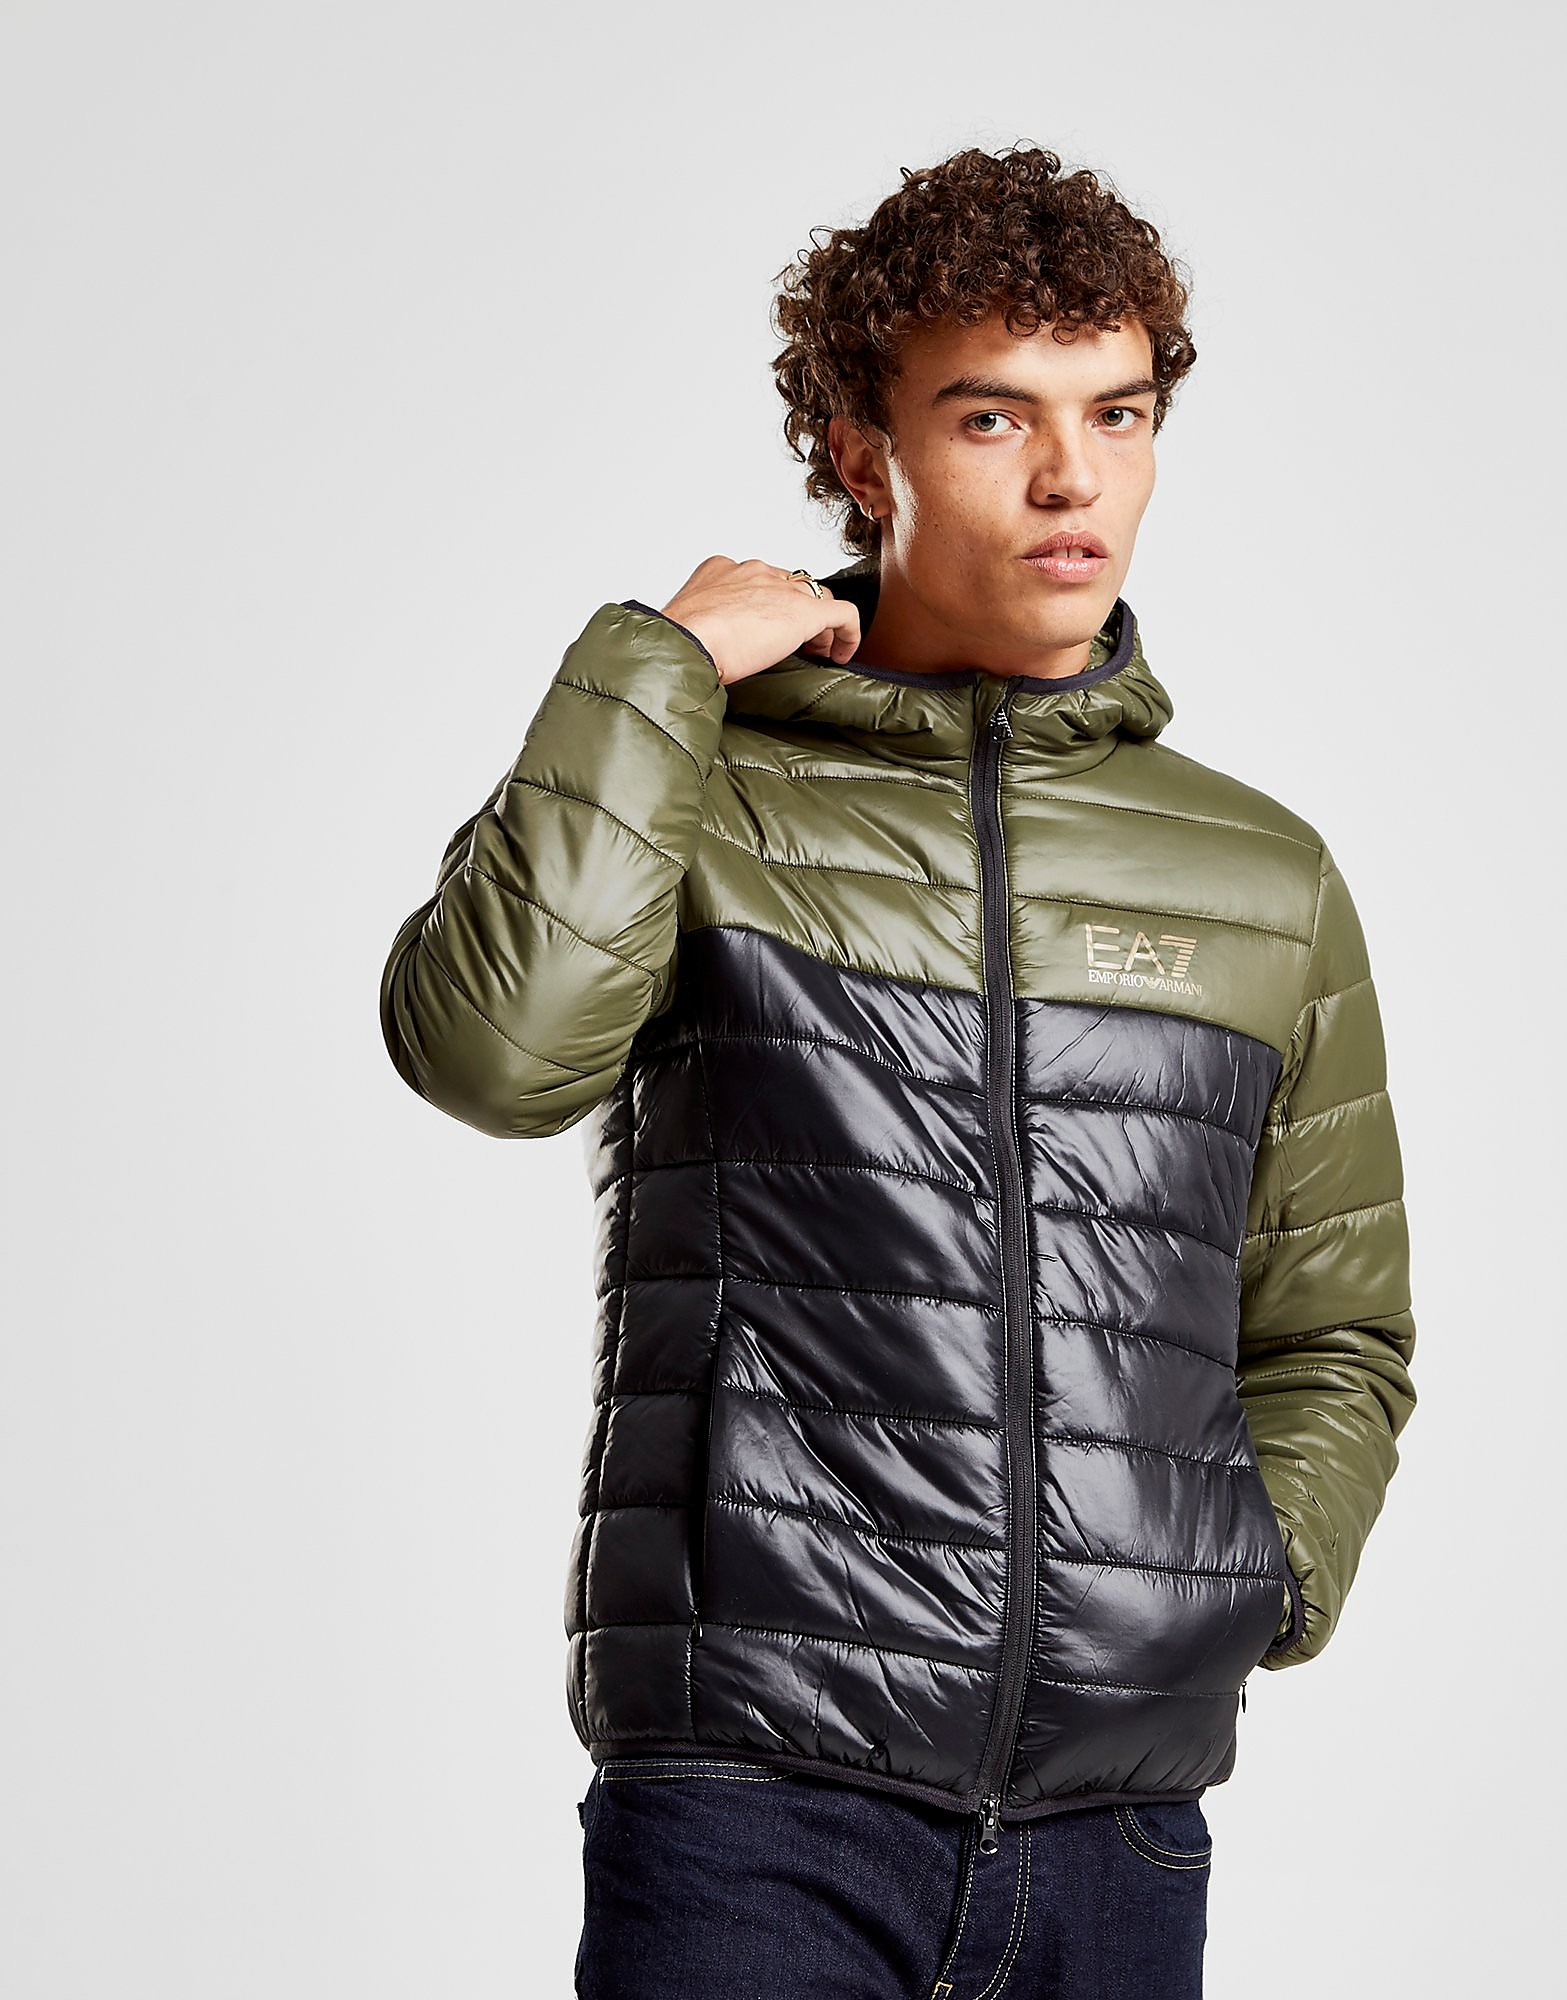 Emporio Armani EA7 Colour Block Bubble Jacket Heren - Groen - Heren